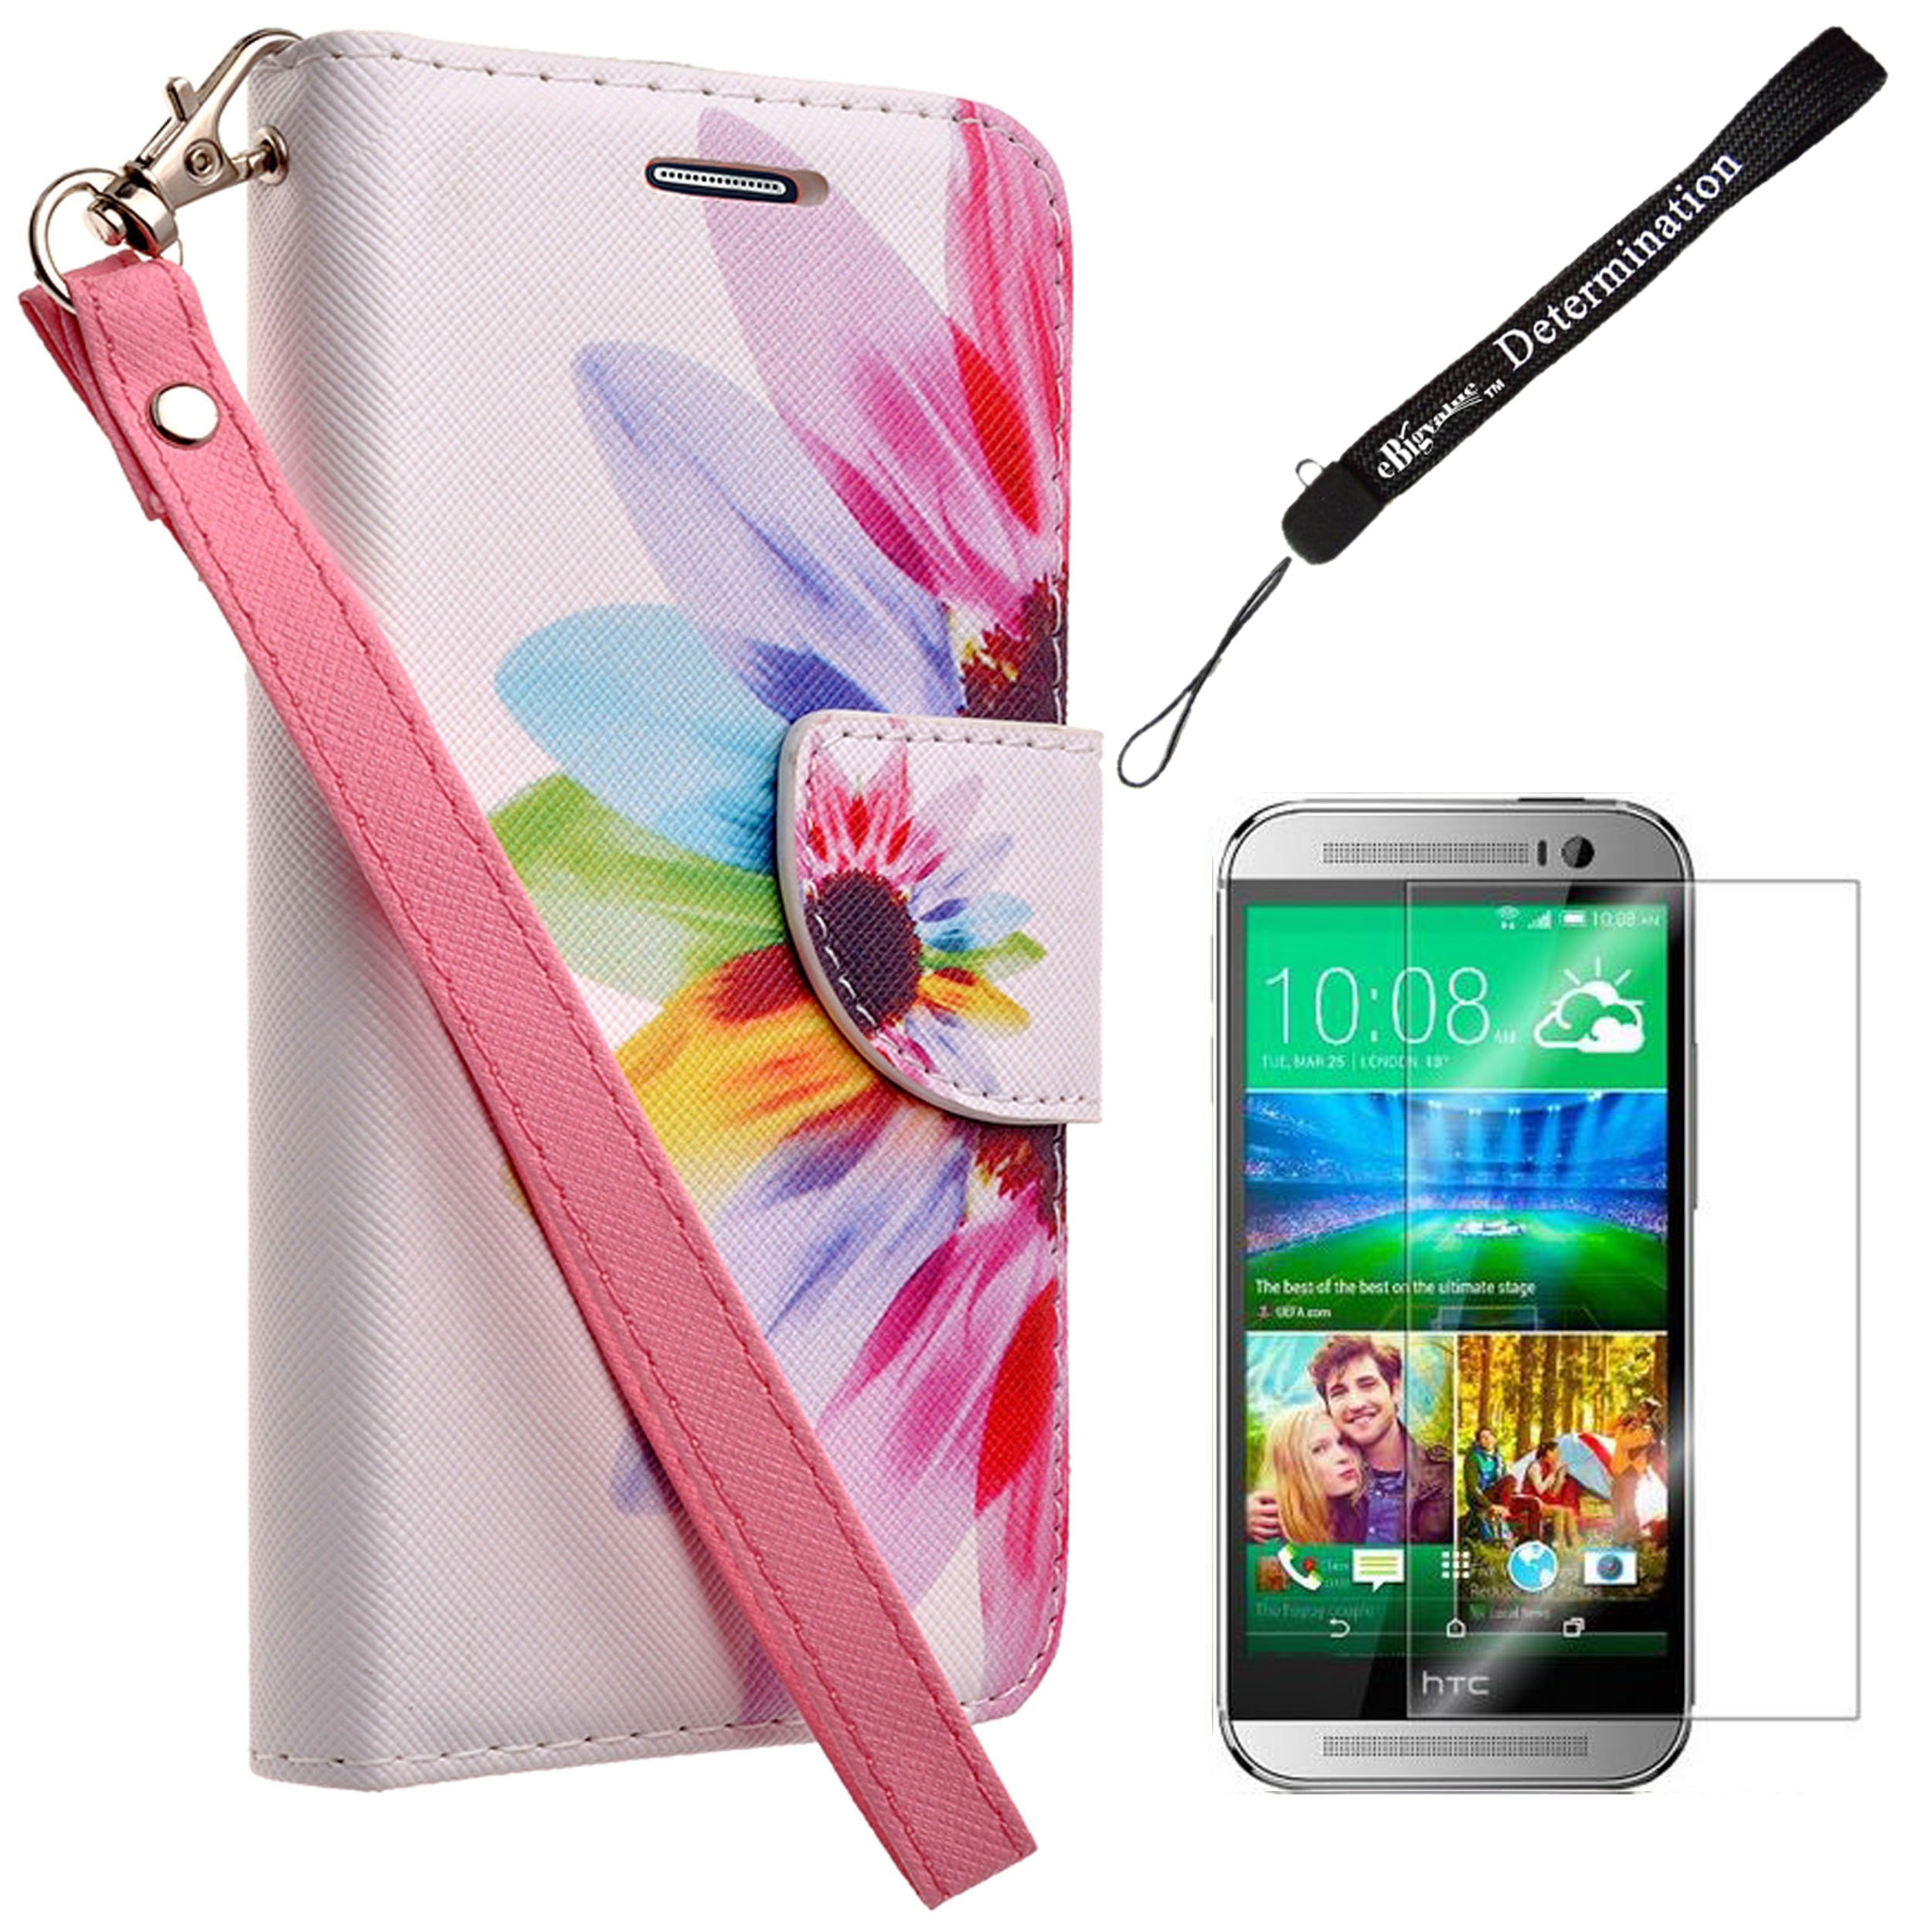 Fashion Design Rainbow Sunflower Wallet Flip Case w/Screen Protector for HTC One M9 Android 5.0 Lollipop with HTC Sense